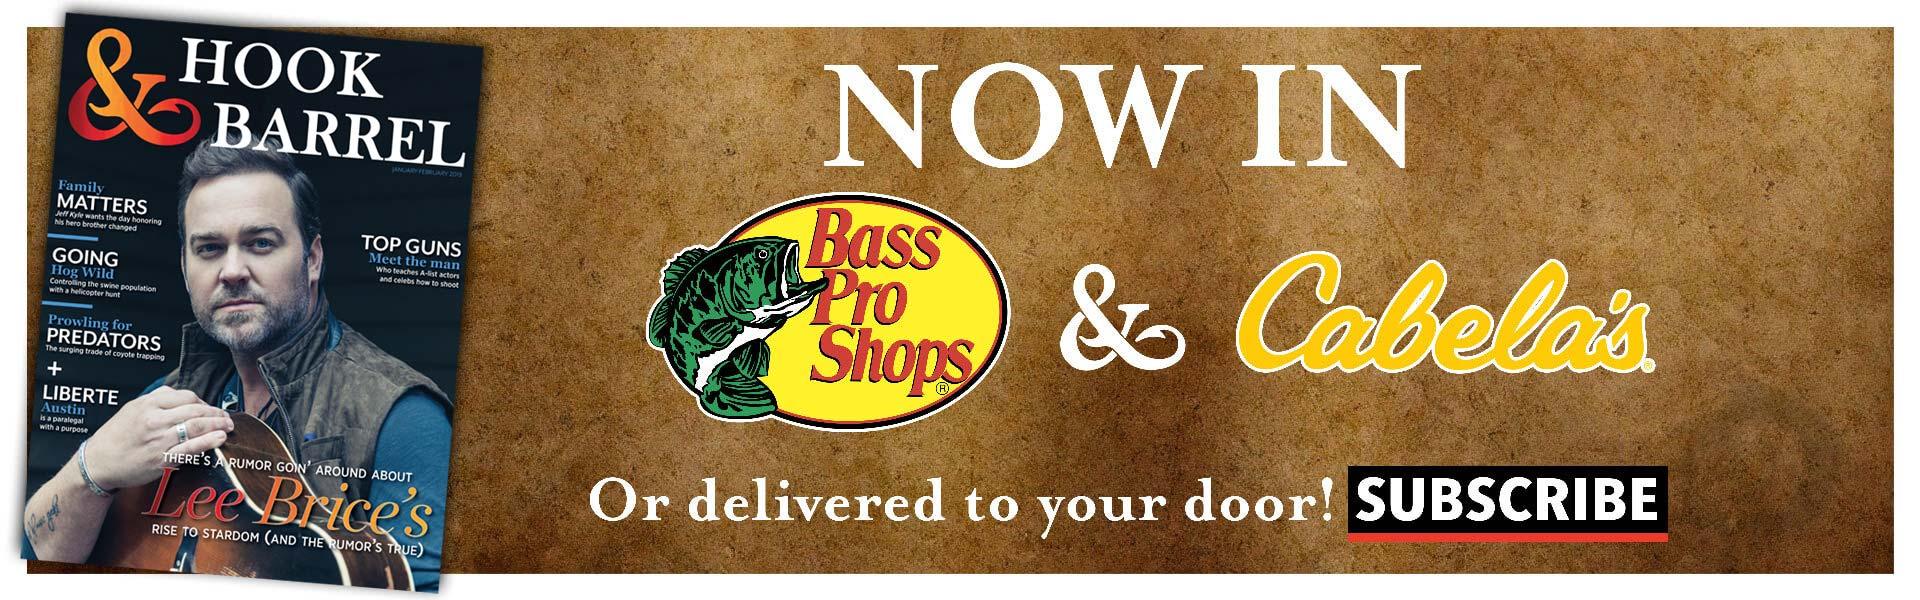 Hook and Barrel Magazine Now in Bass Pro Shops and Cabaelas. Subscribe Today.